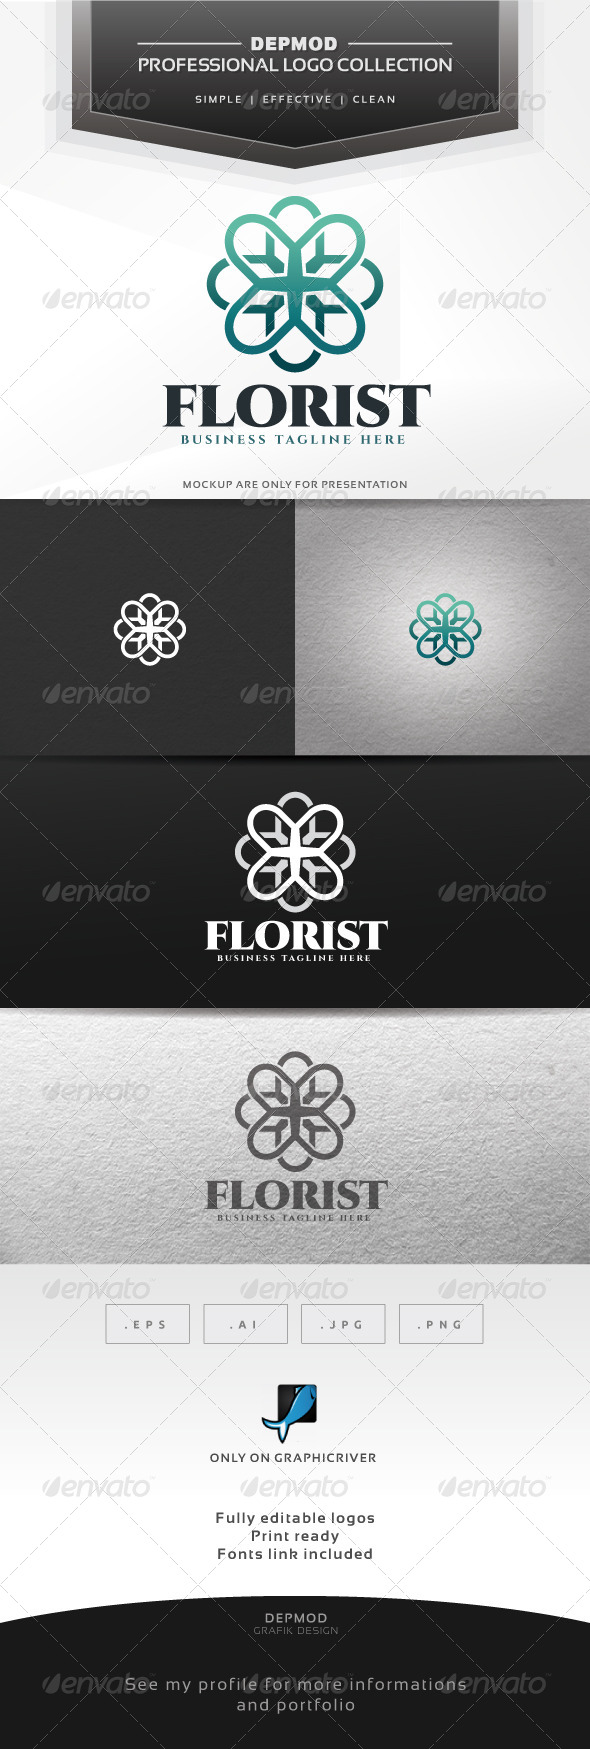 Florist Logo - Abstract Logo Templates